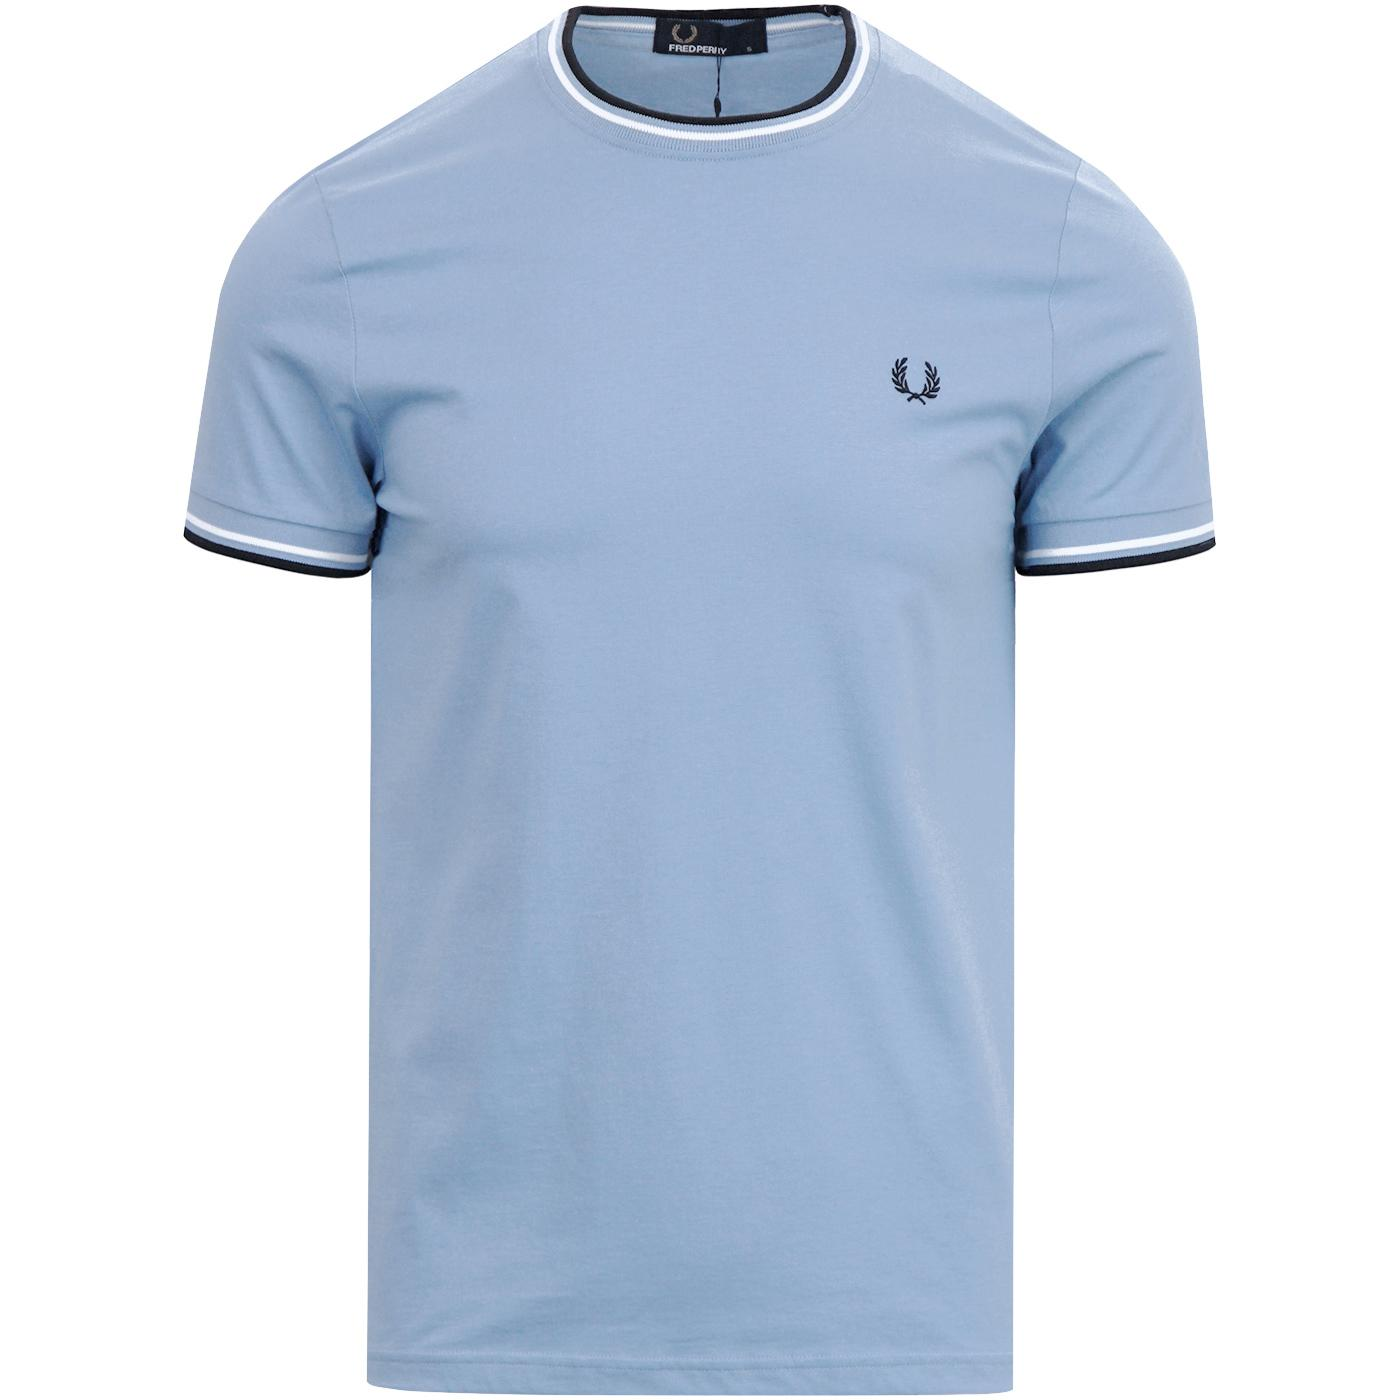 FRED PERRY Retro Mod Twin Tipped Crew T-Shirt S/W